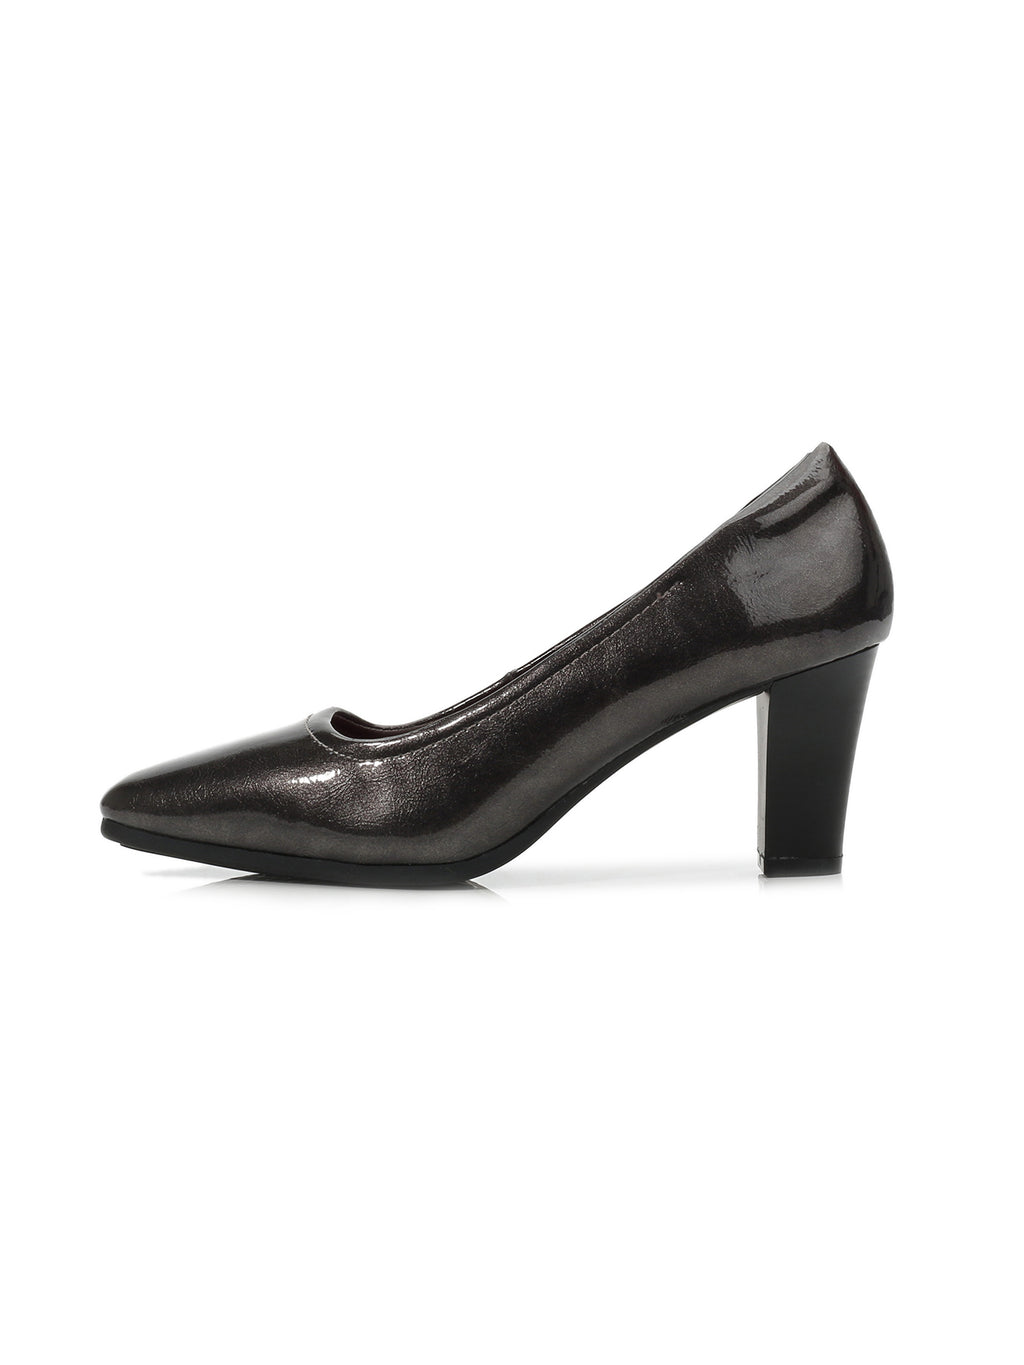 Larrie Grey Elegant Faux-Patent Leather Classic Heels